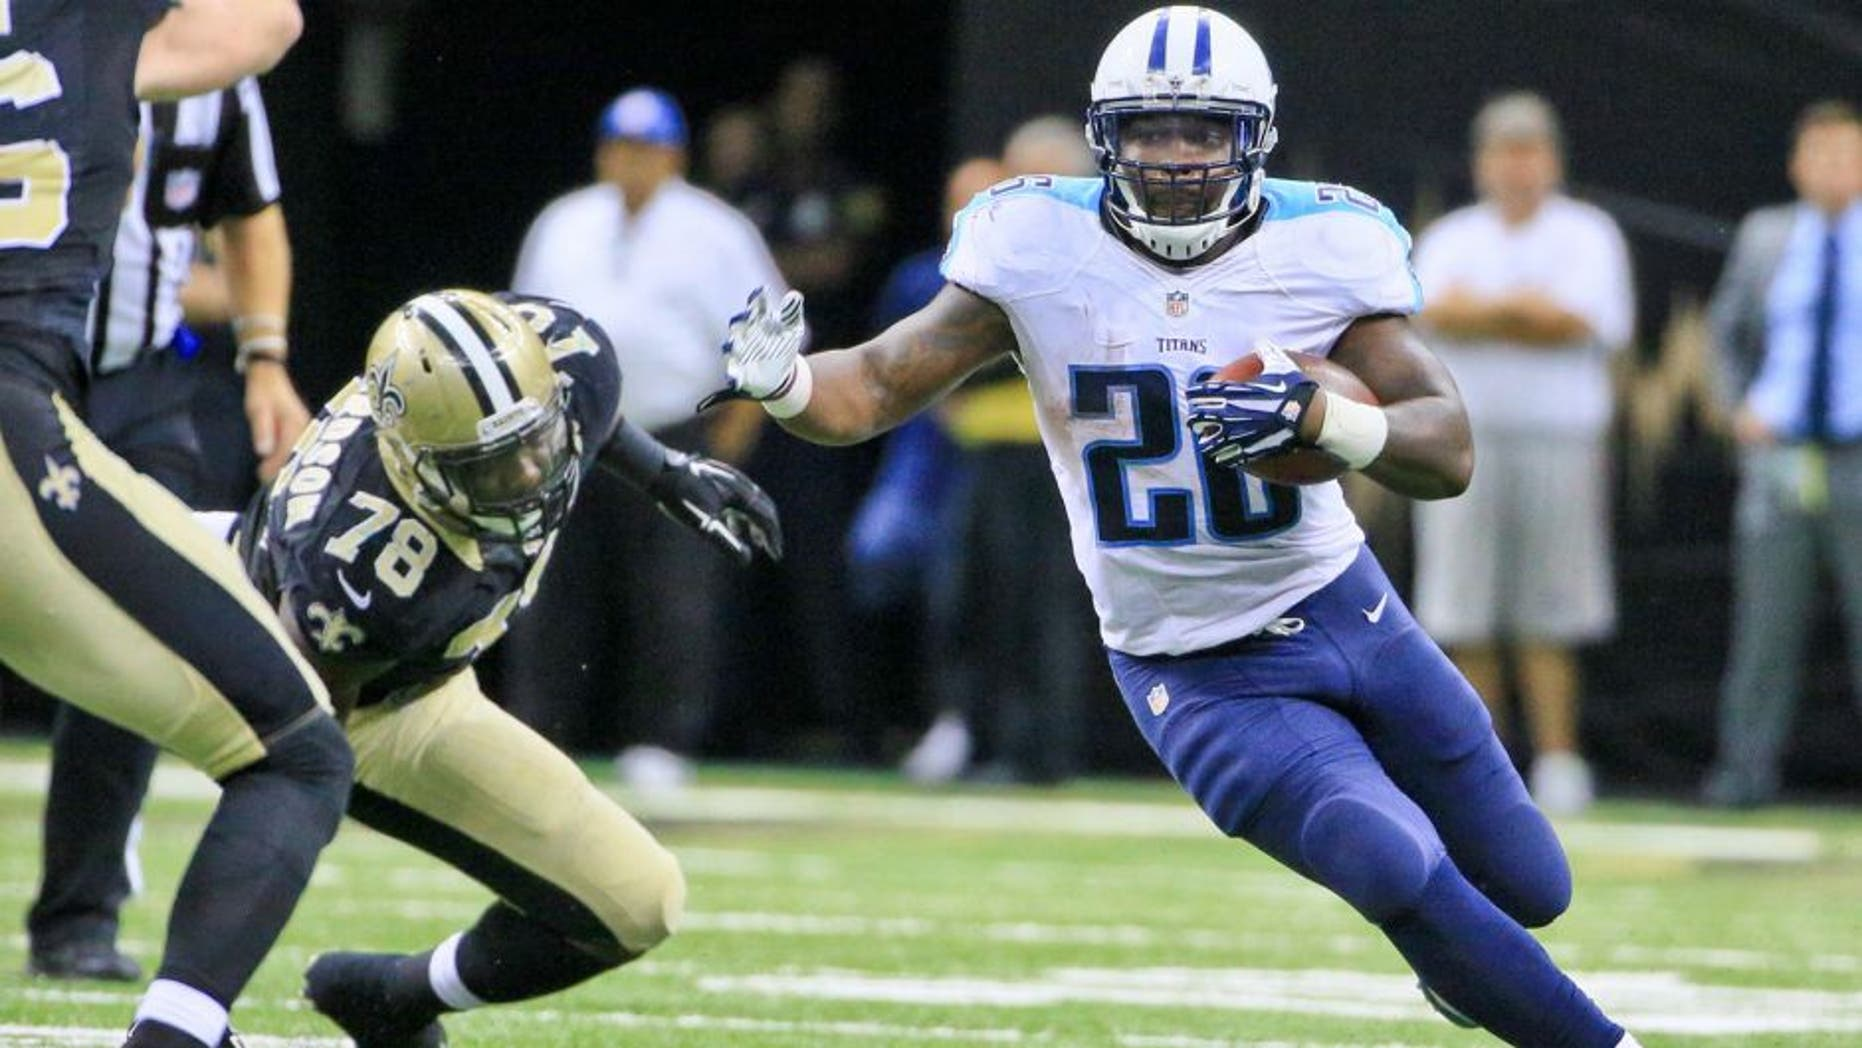 Nov 8, 2015; New Orleans, LA, USA; Tennessee Titans running back Antonio Andrews (26) runs past New Orleans Saints defensive end Bobby Richardson (78) during the second half of a game at the Mercedes-Benz Superdome. The Titans defeated the Saints 34-28 in overtime. Mandatory Credit: Derick E. Hingle-USA TODAY Sports